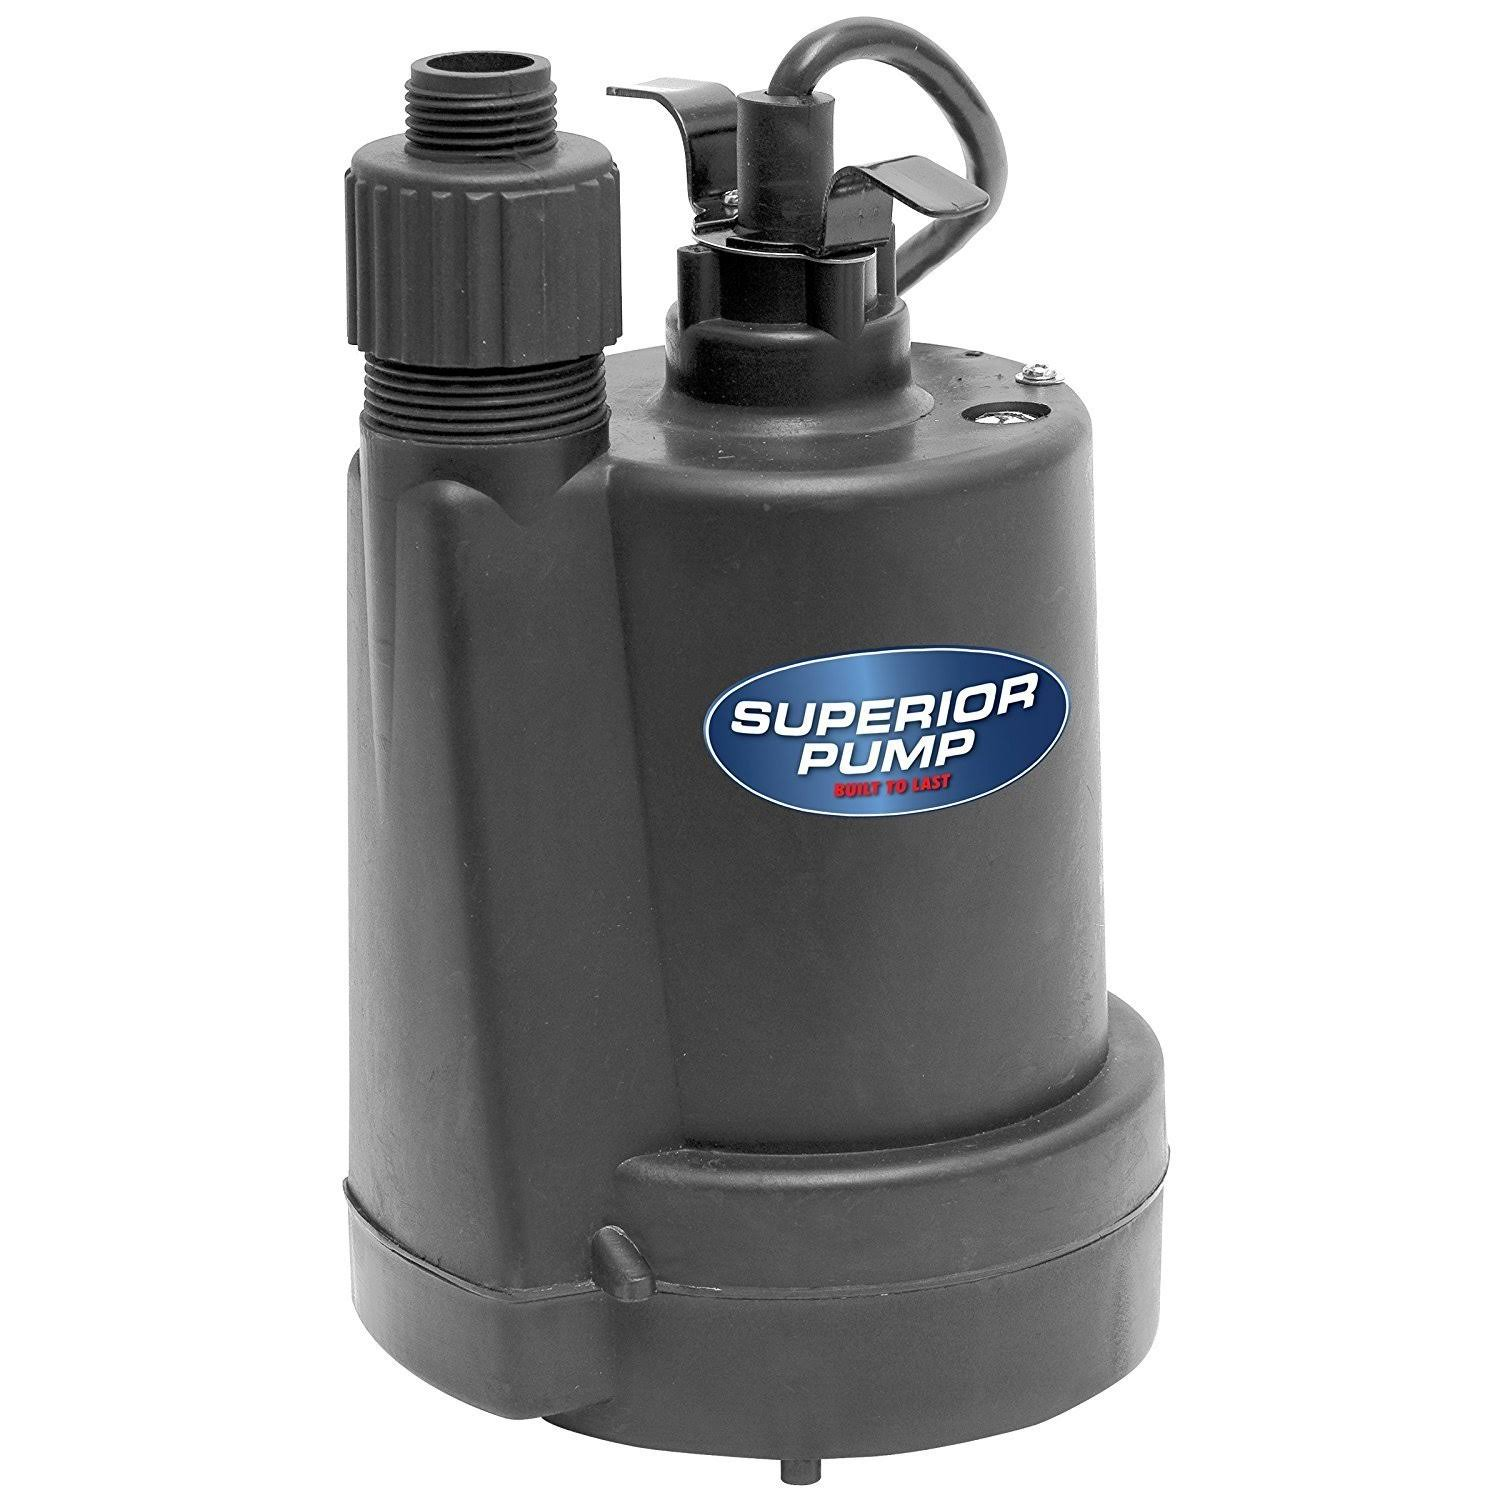 Superior Pump Thermoplastic Submersible Utility Pump - 1/4 HP